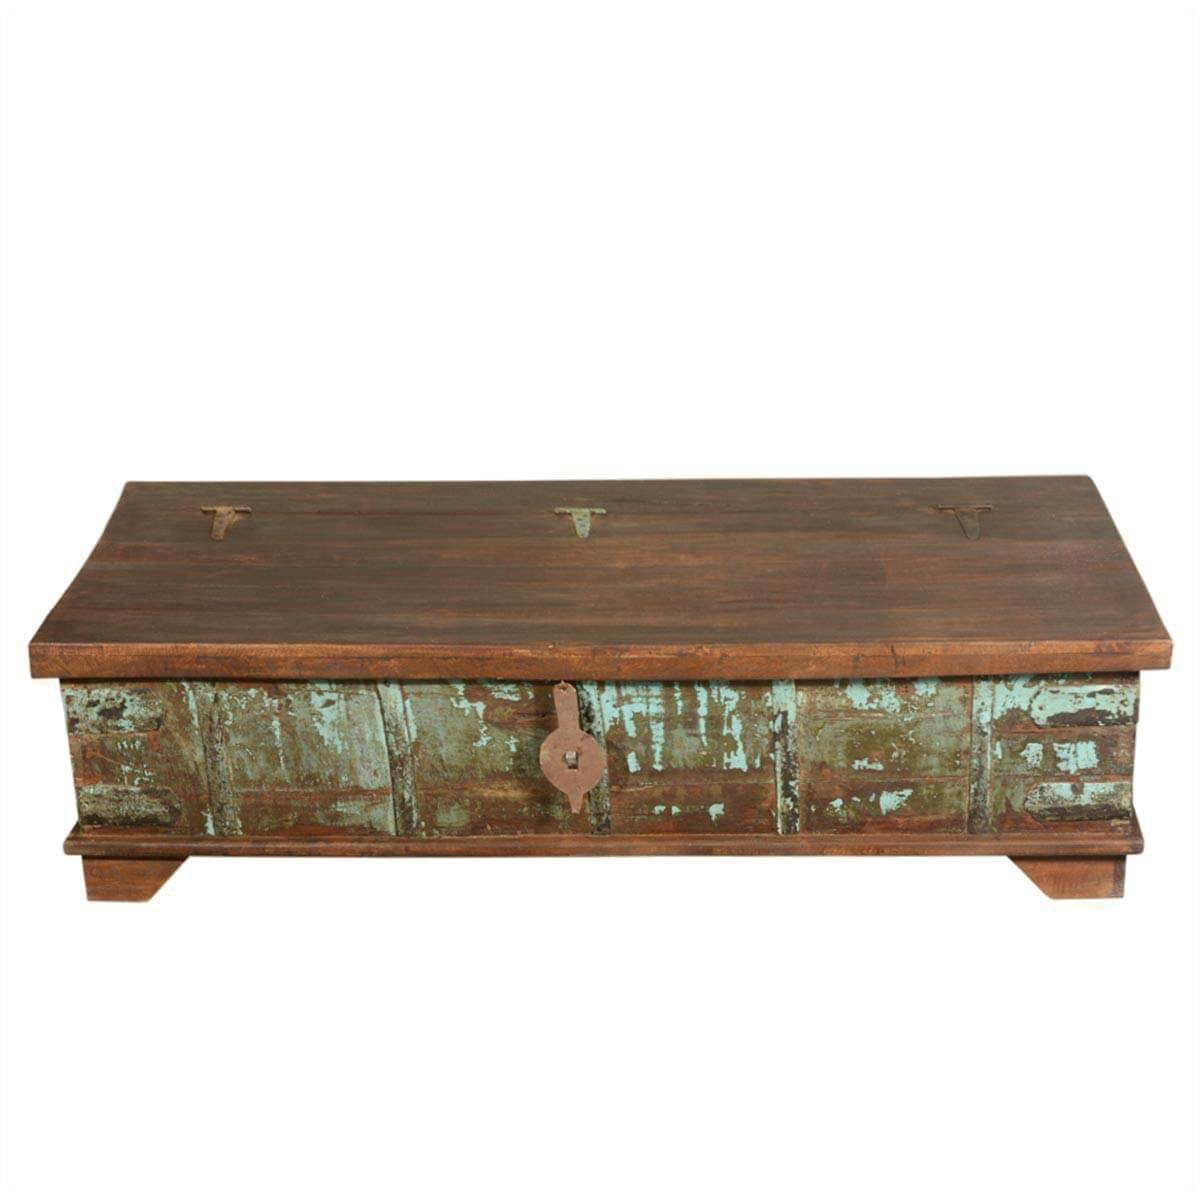 Mediterranean rustic reclaimed wood storage trunk coffee table for Reclaimed coffee table